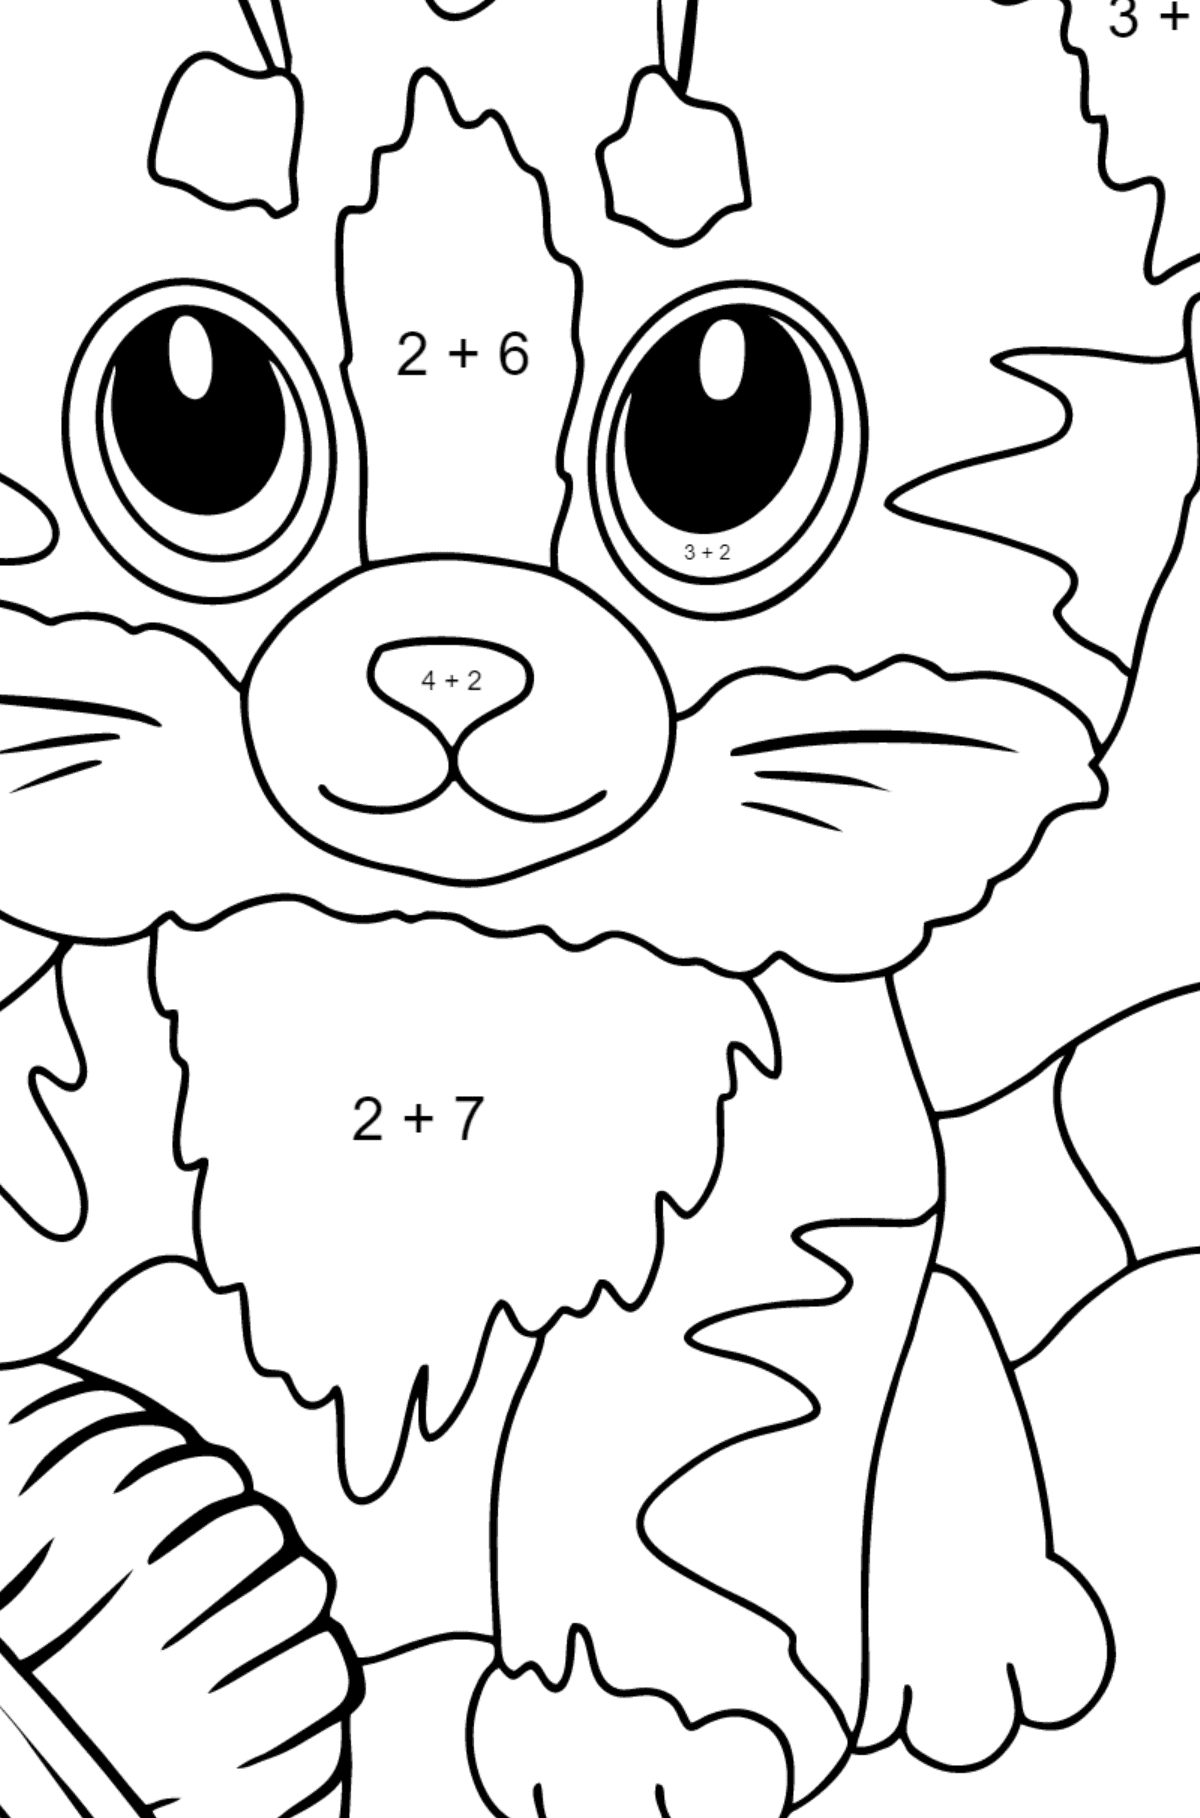 Coloring Page - a Kitten has Caught a Ball of Yarn - Math Coloring - Addition for Children